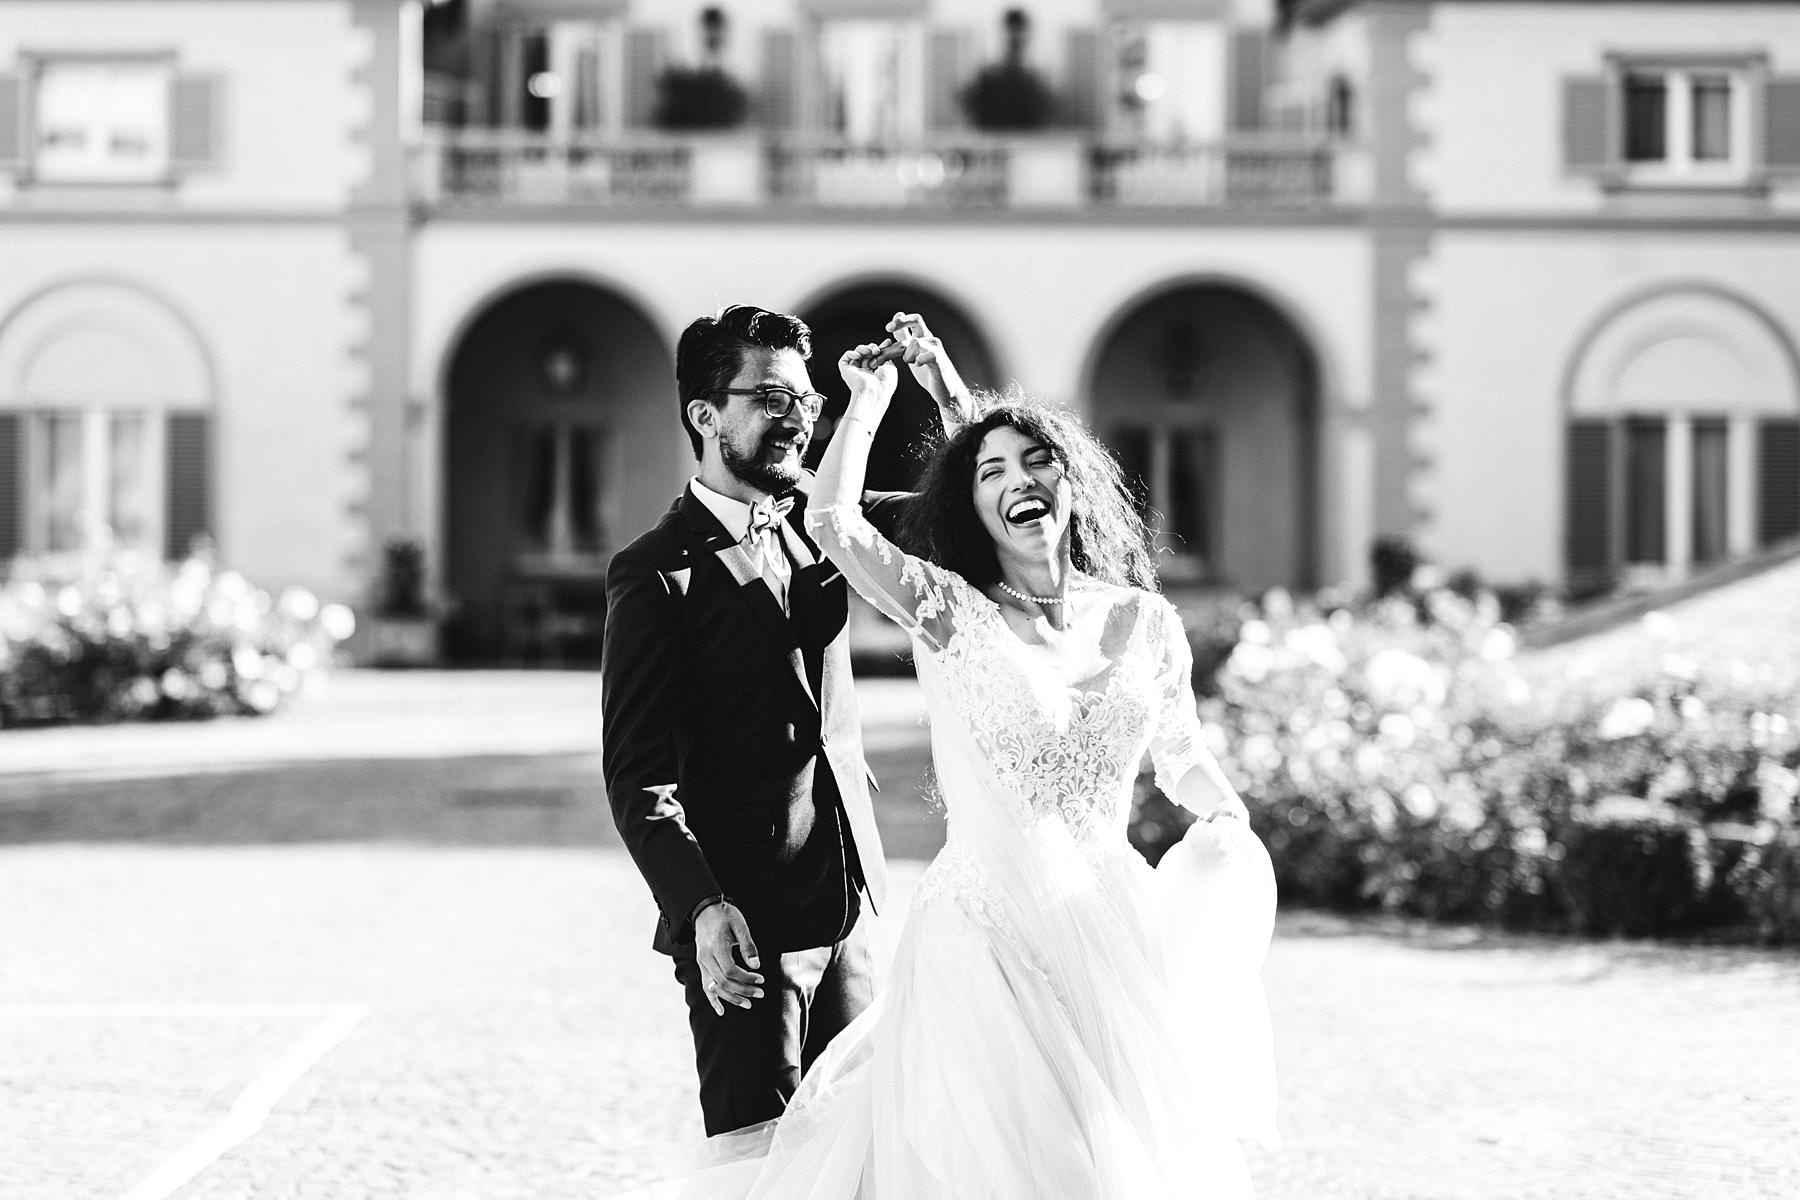 Honeymoon photos to cherish forever. Are you planning a honeymoon in Florence, Italy, and you want it to be really special? Make it unforgettable taking sunrise photos with your wedding dresses!